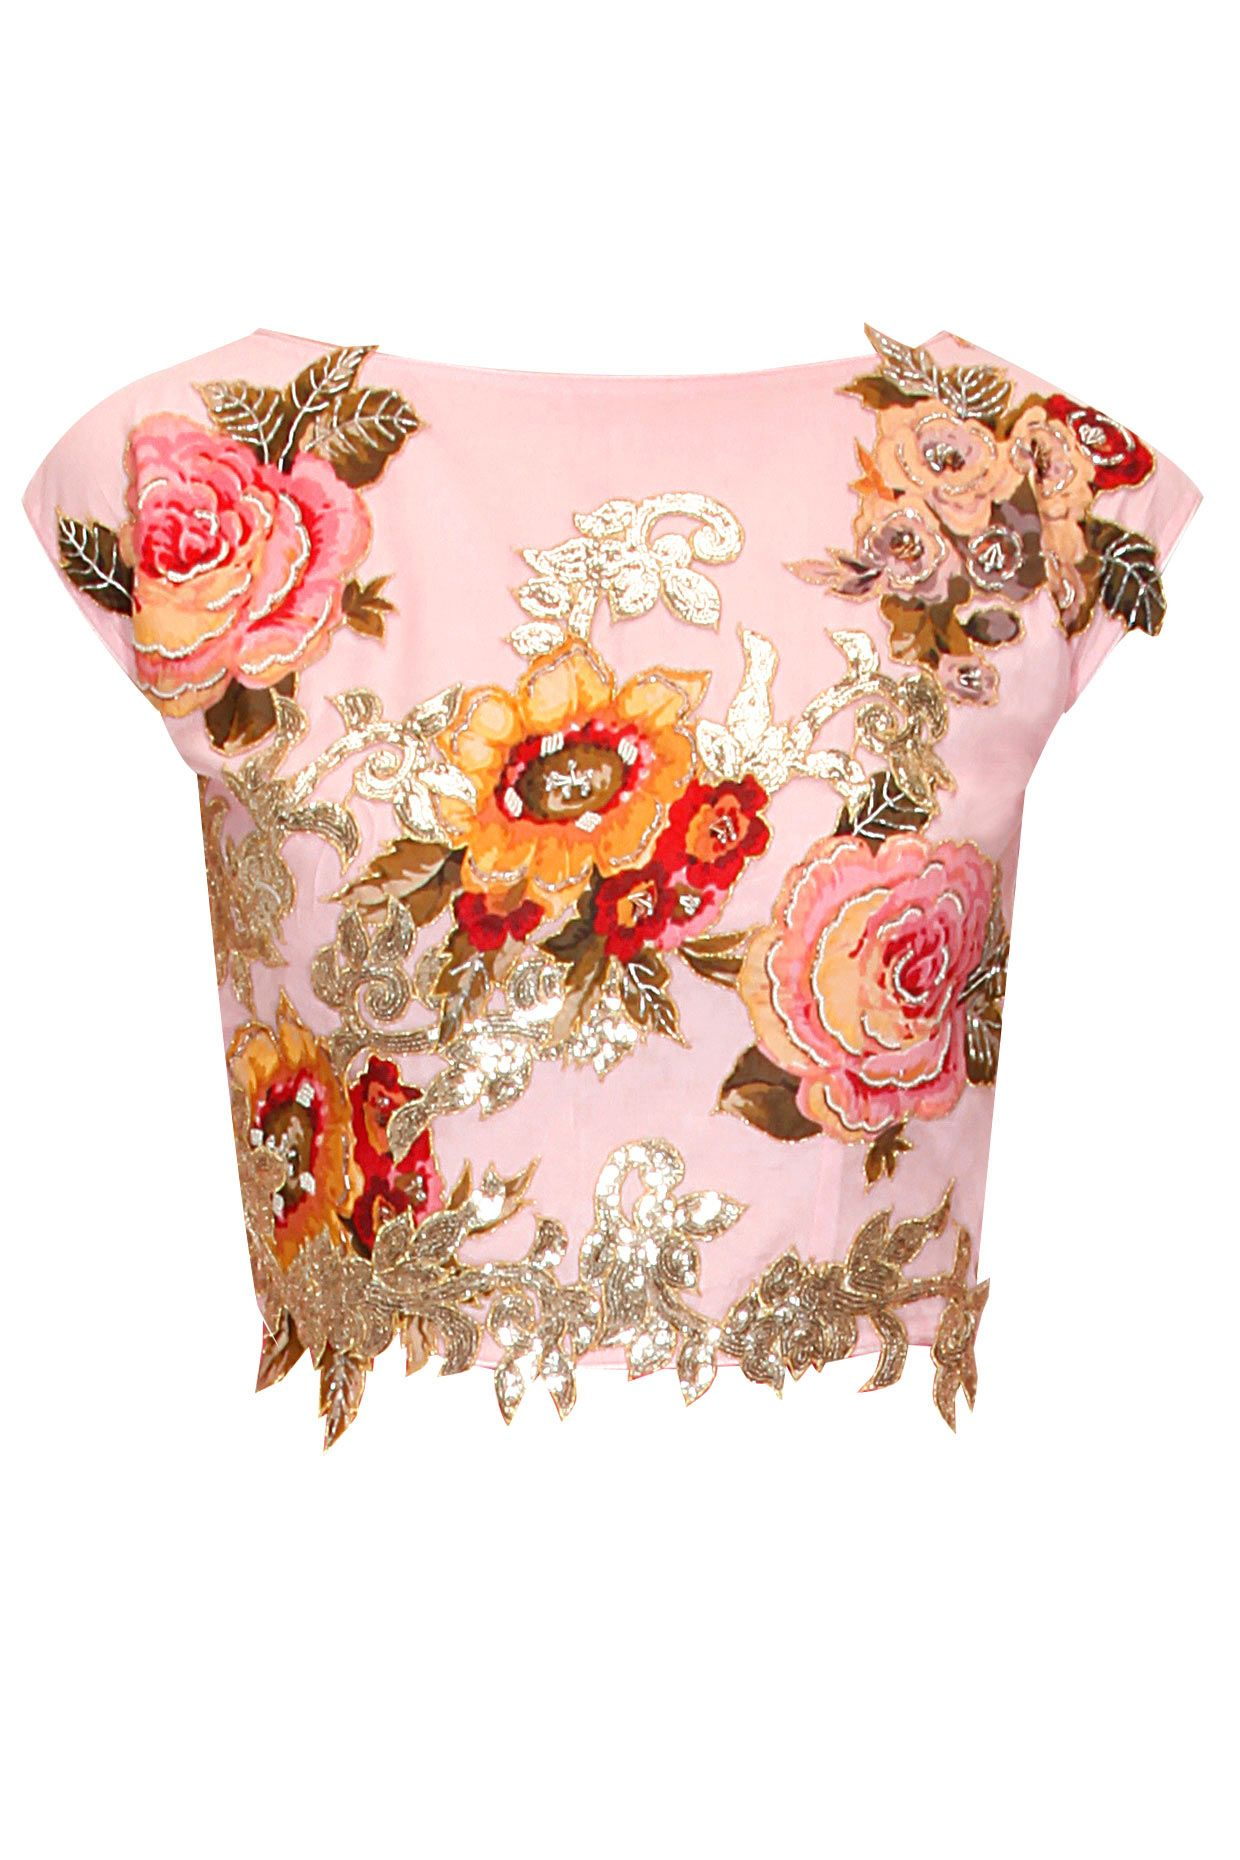 Pink floral applique work and beads embroidered crop top by Eshaani Jayaswal. Shop now: http://